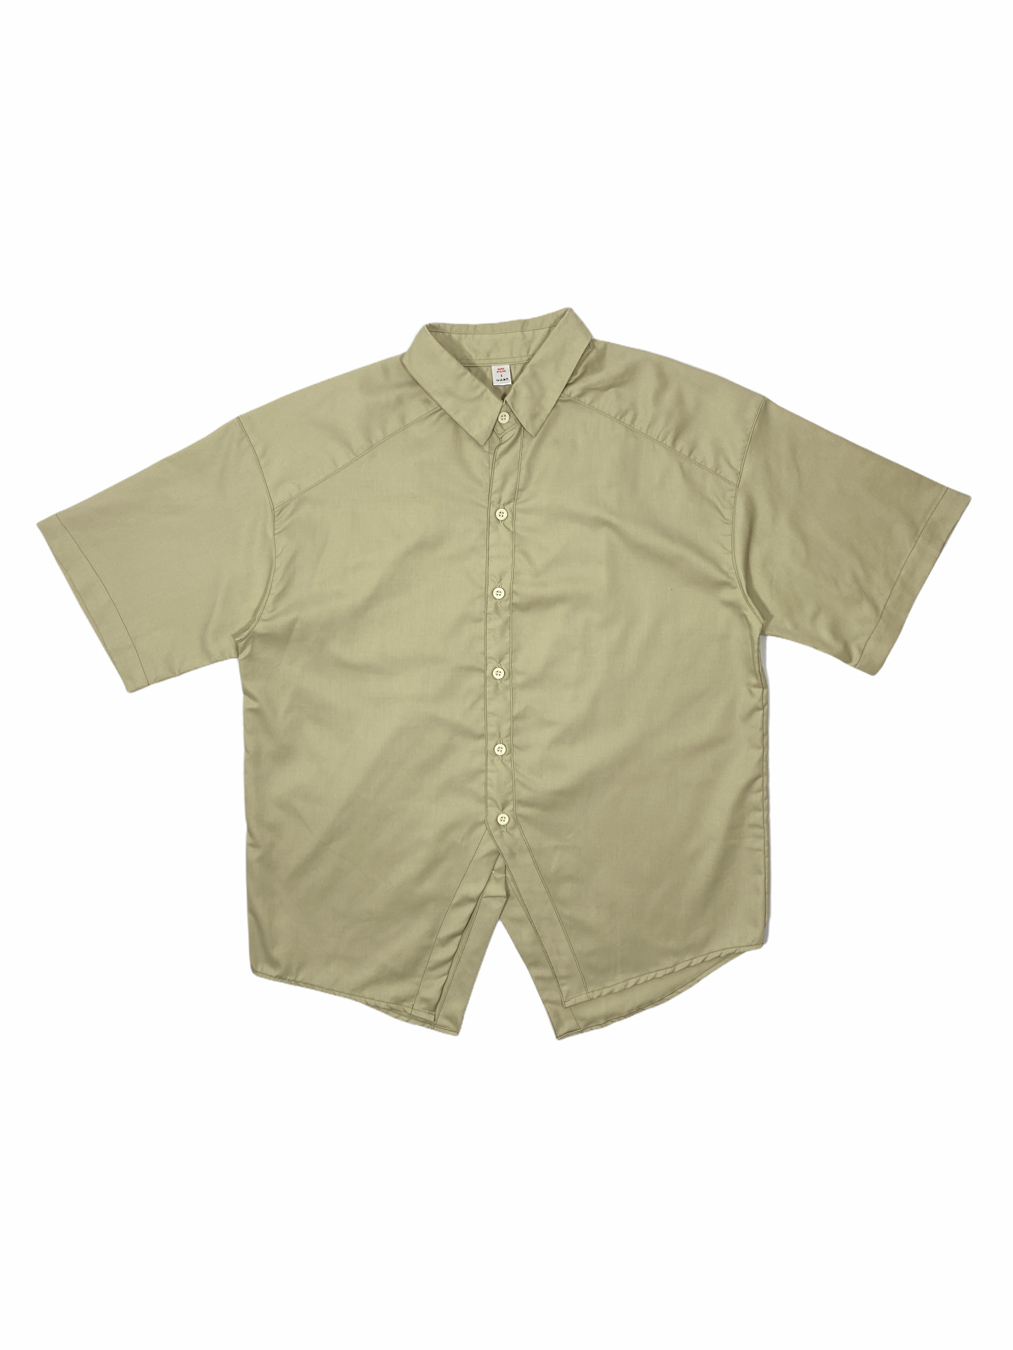 Sand Incubus (Soft Green)